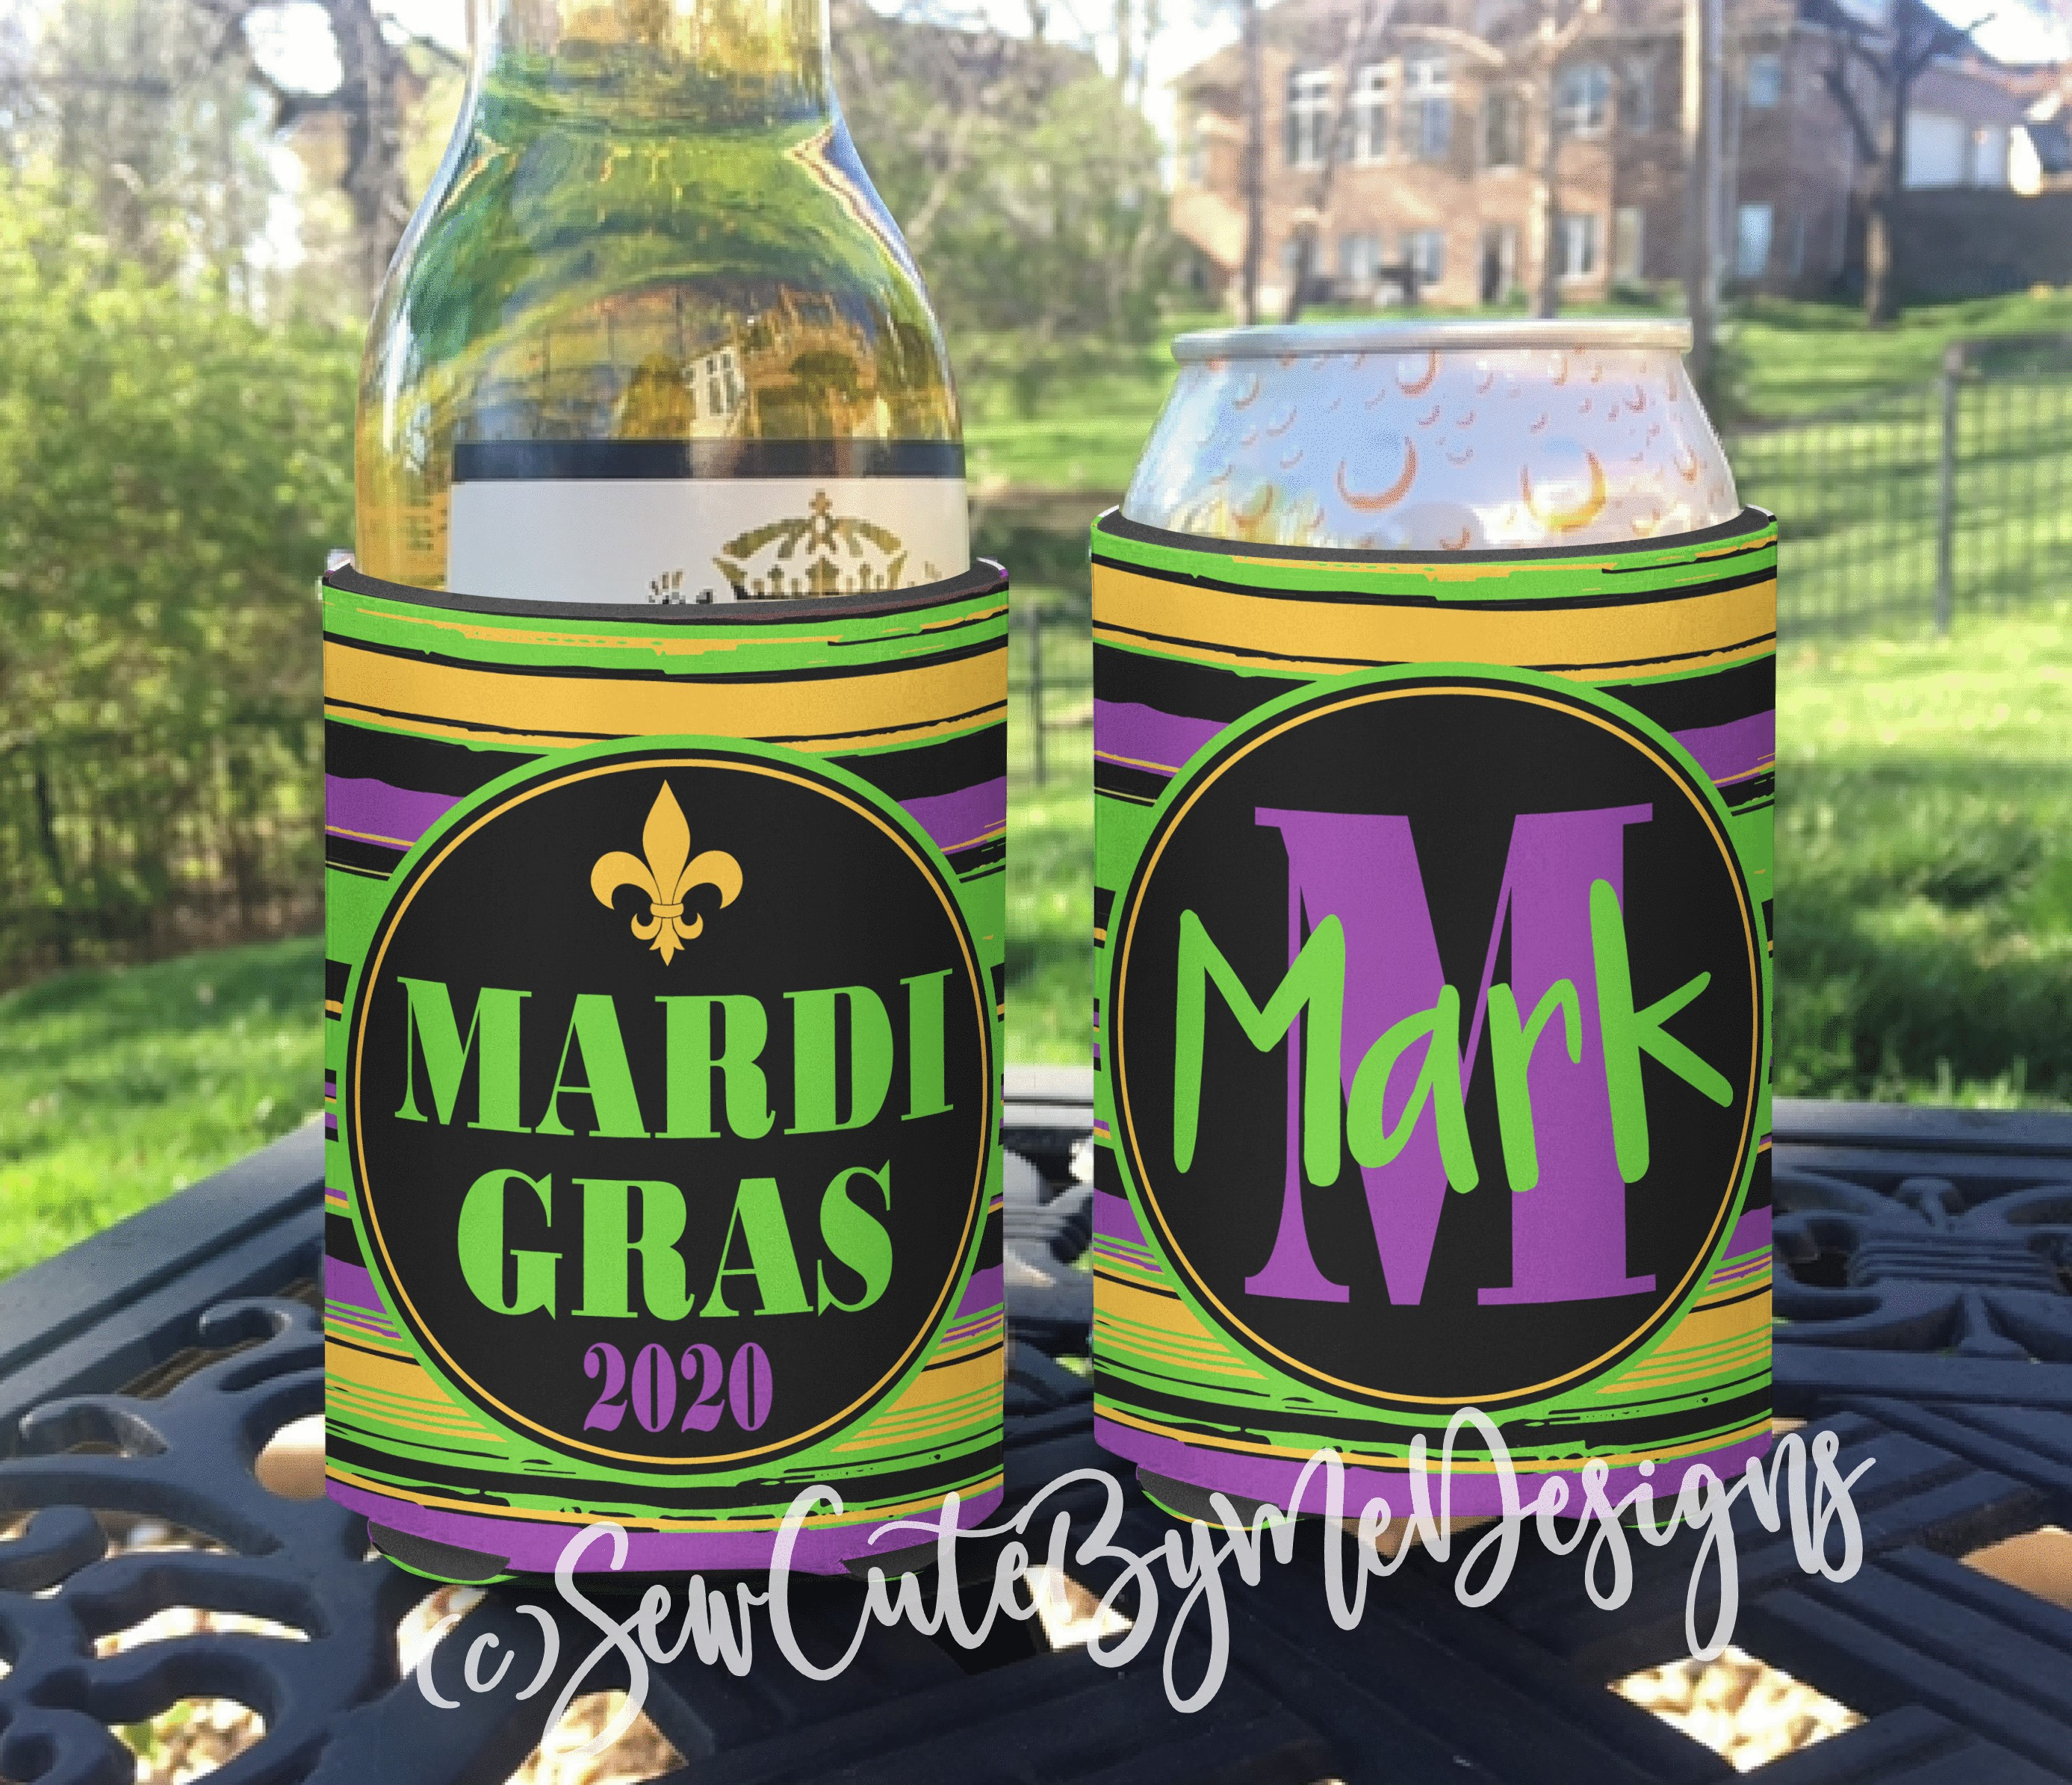 Mardi Gras Koozies or coolies - small stripes - New Orleans Vacation Koozies